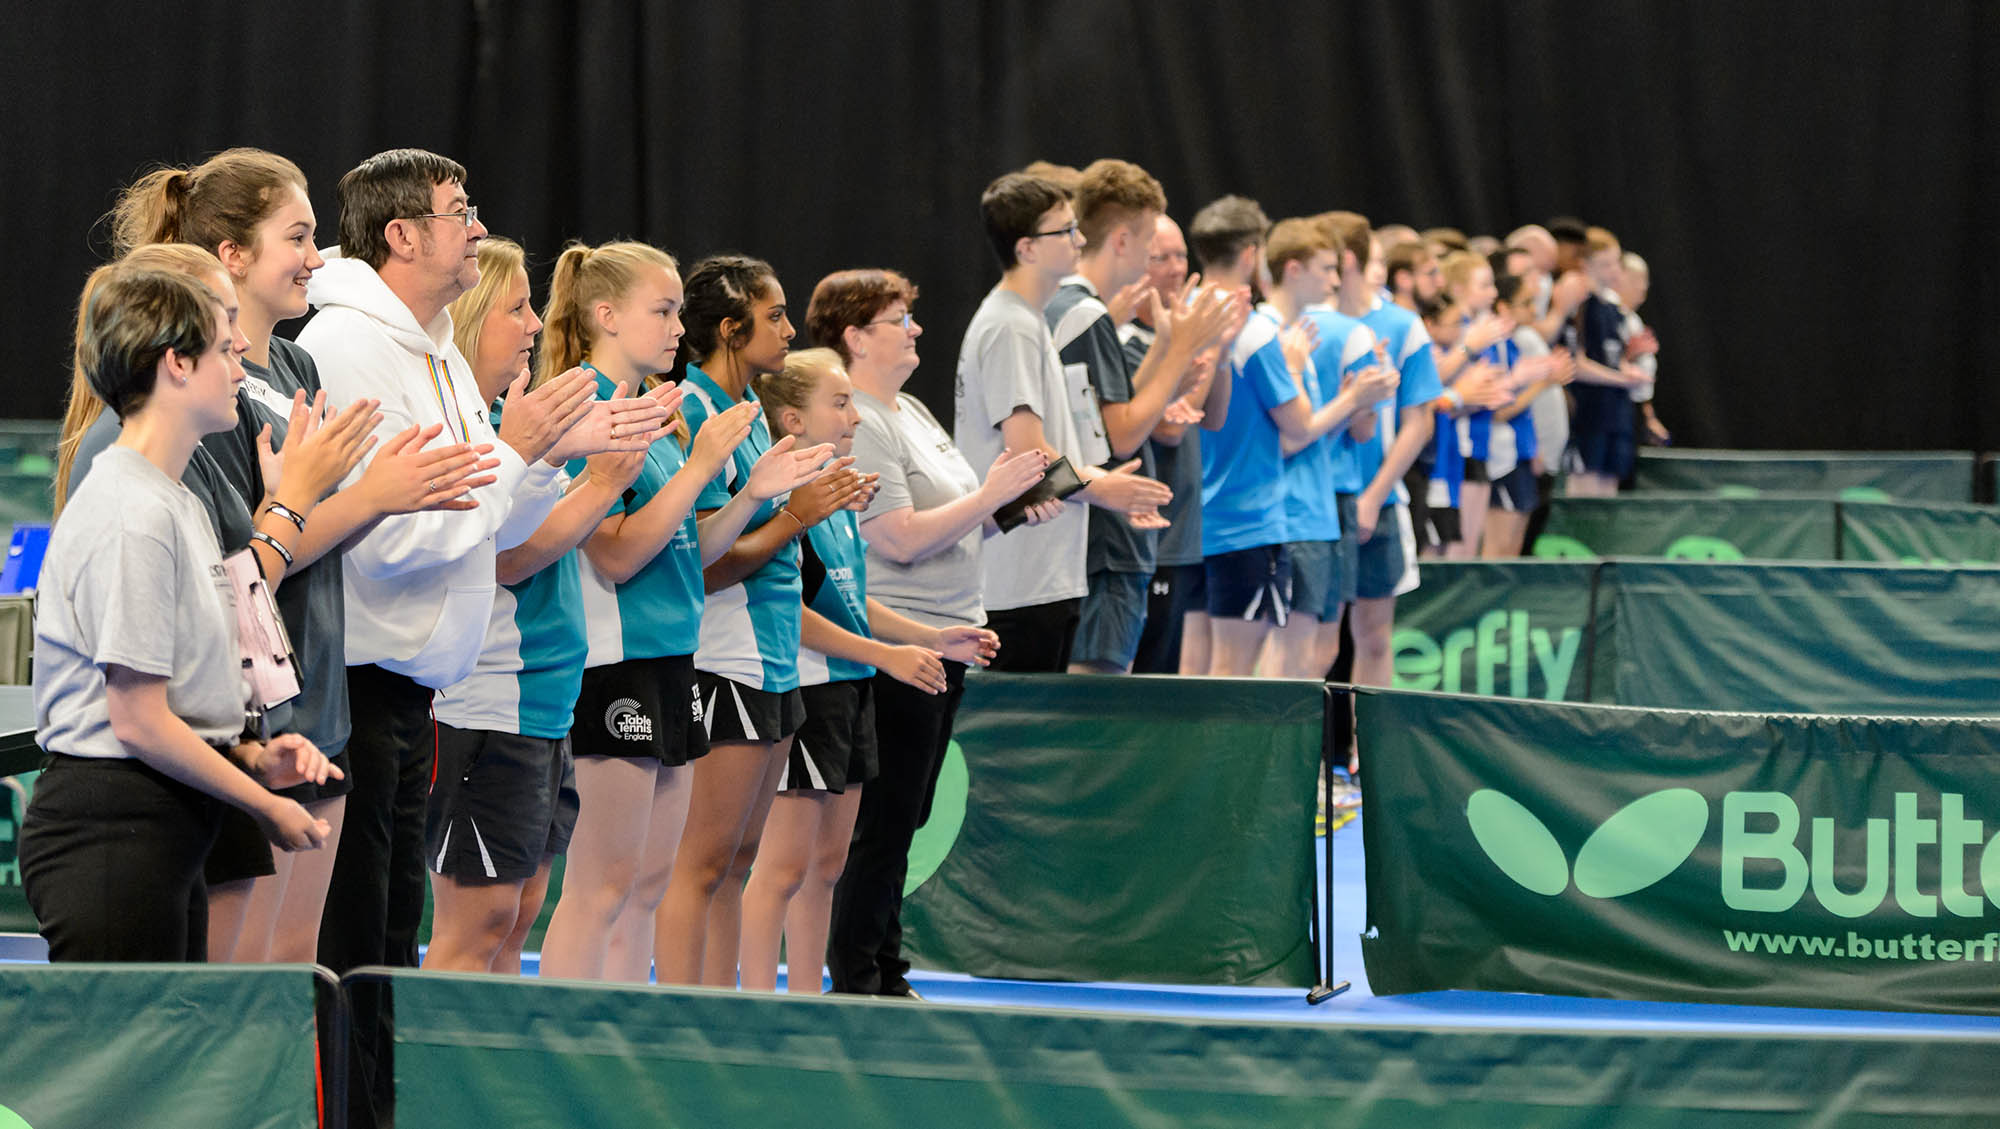 group of people applauding indoor table tennis action